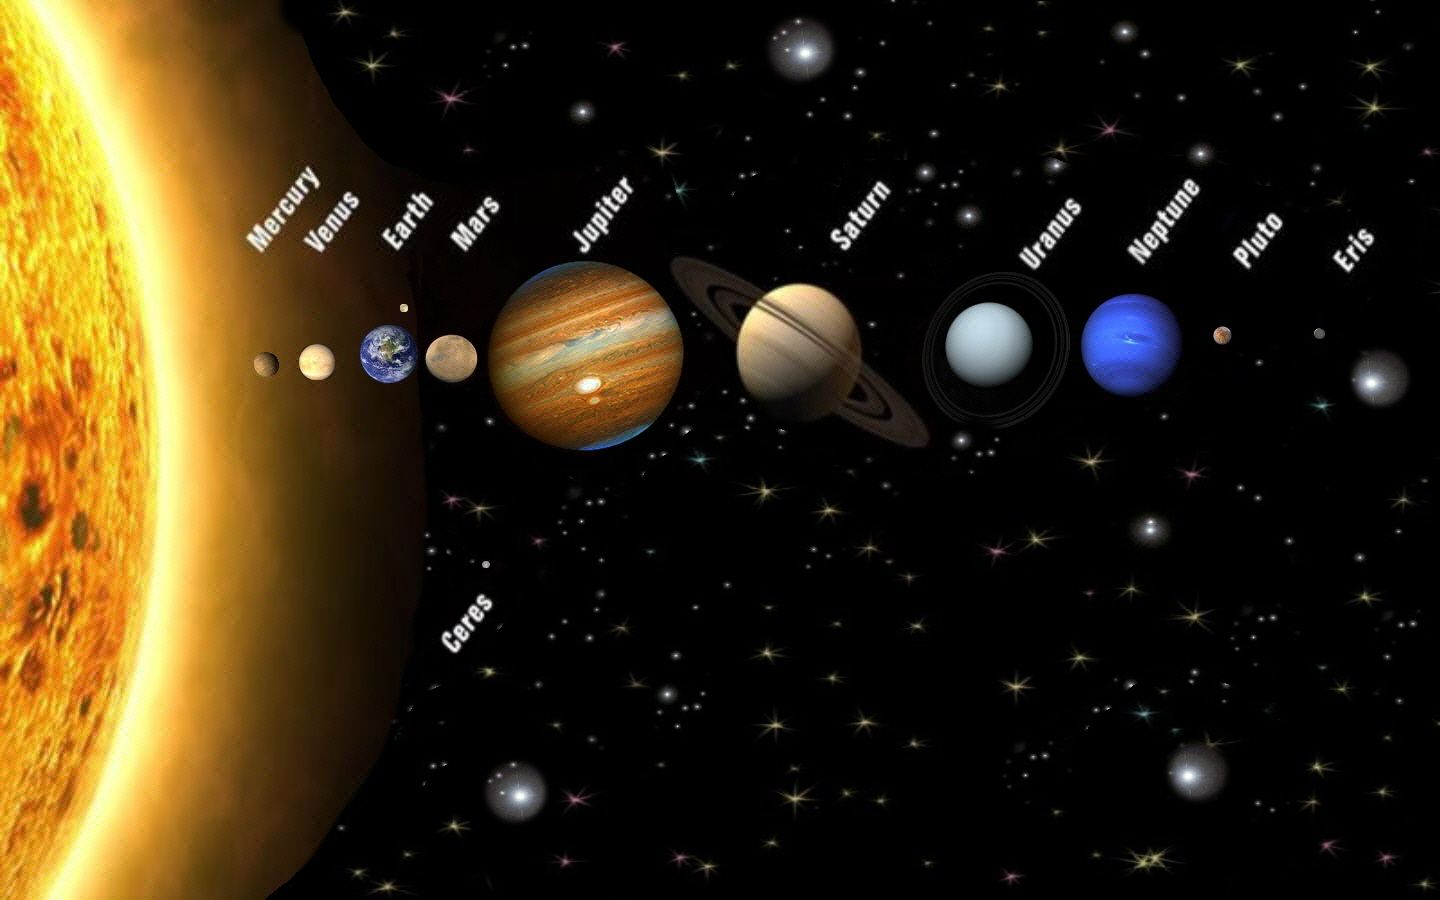 solar system vertical line pics about space - HD1440×900